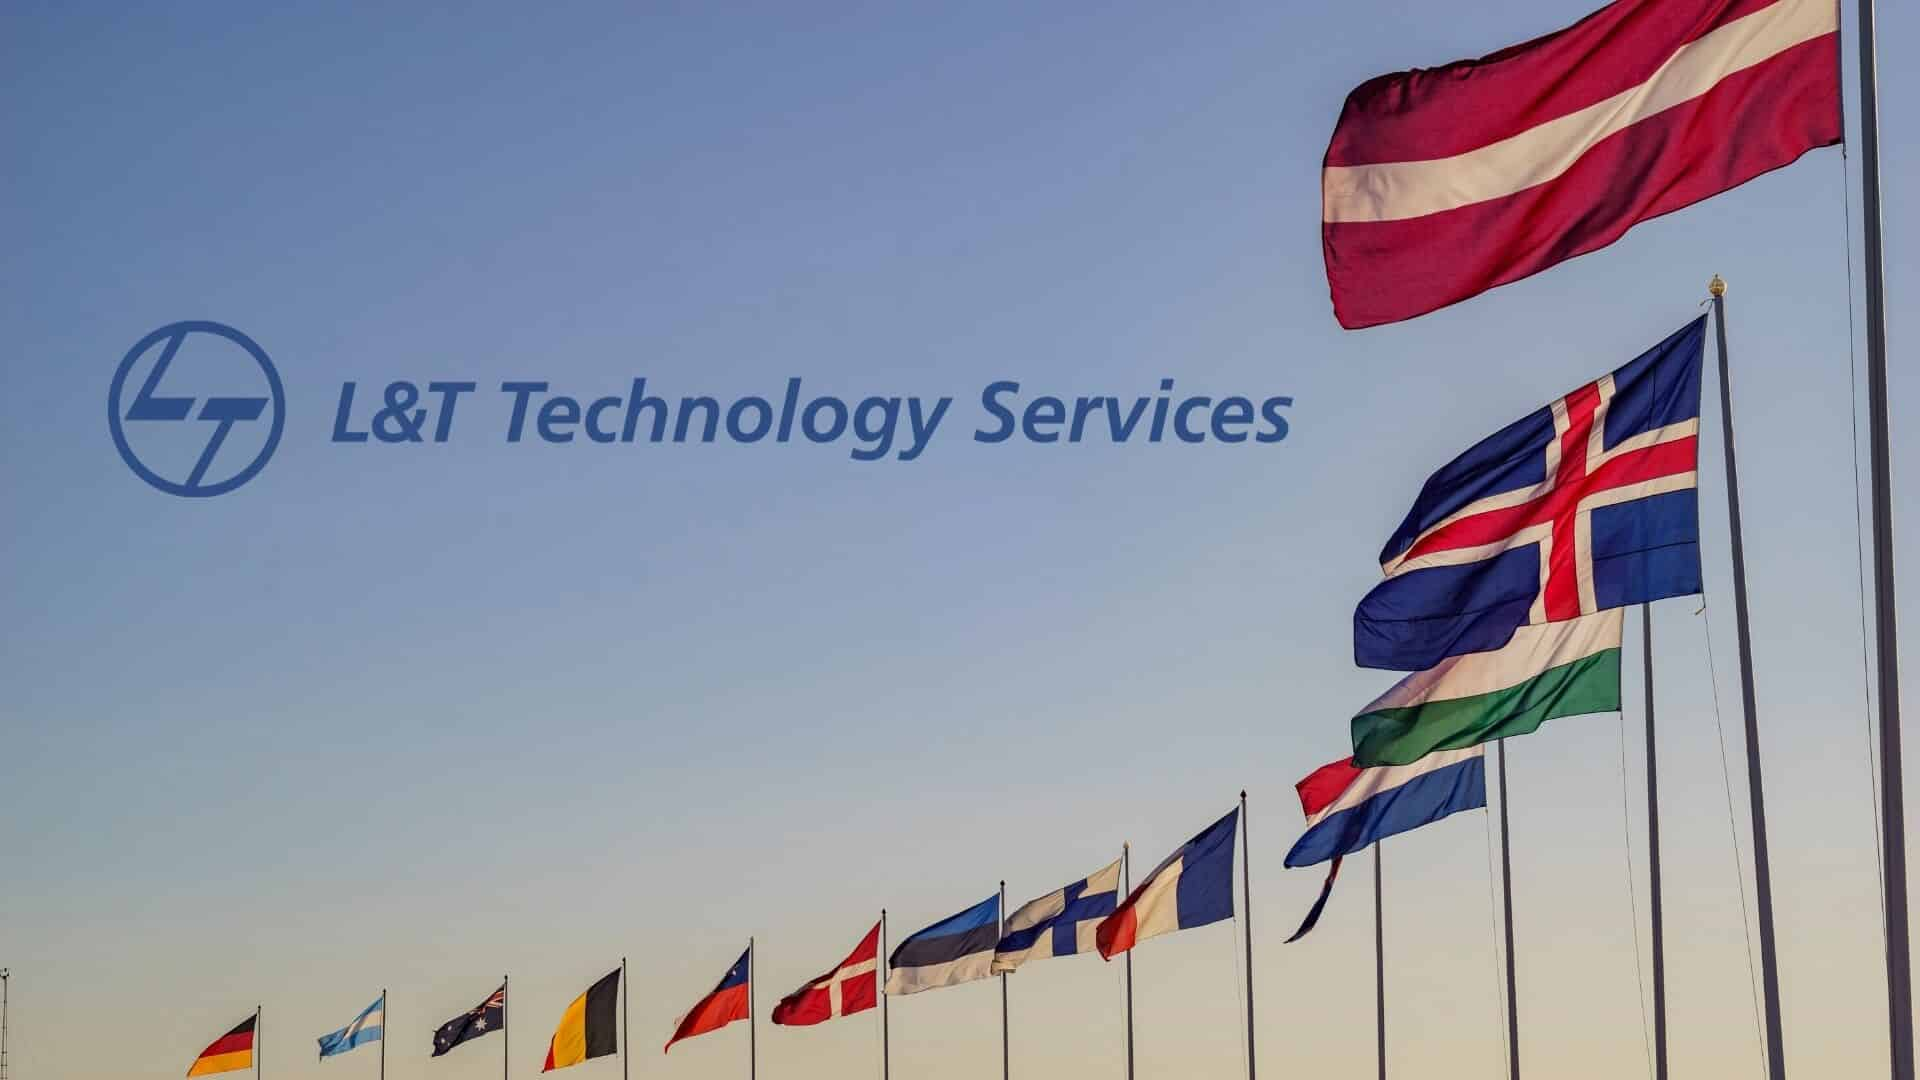 L&T Technology Services Announces Lucrative Project Acquisition in Europe